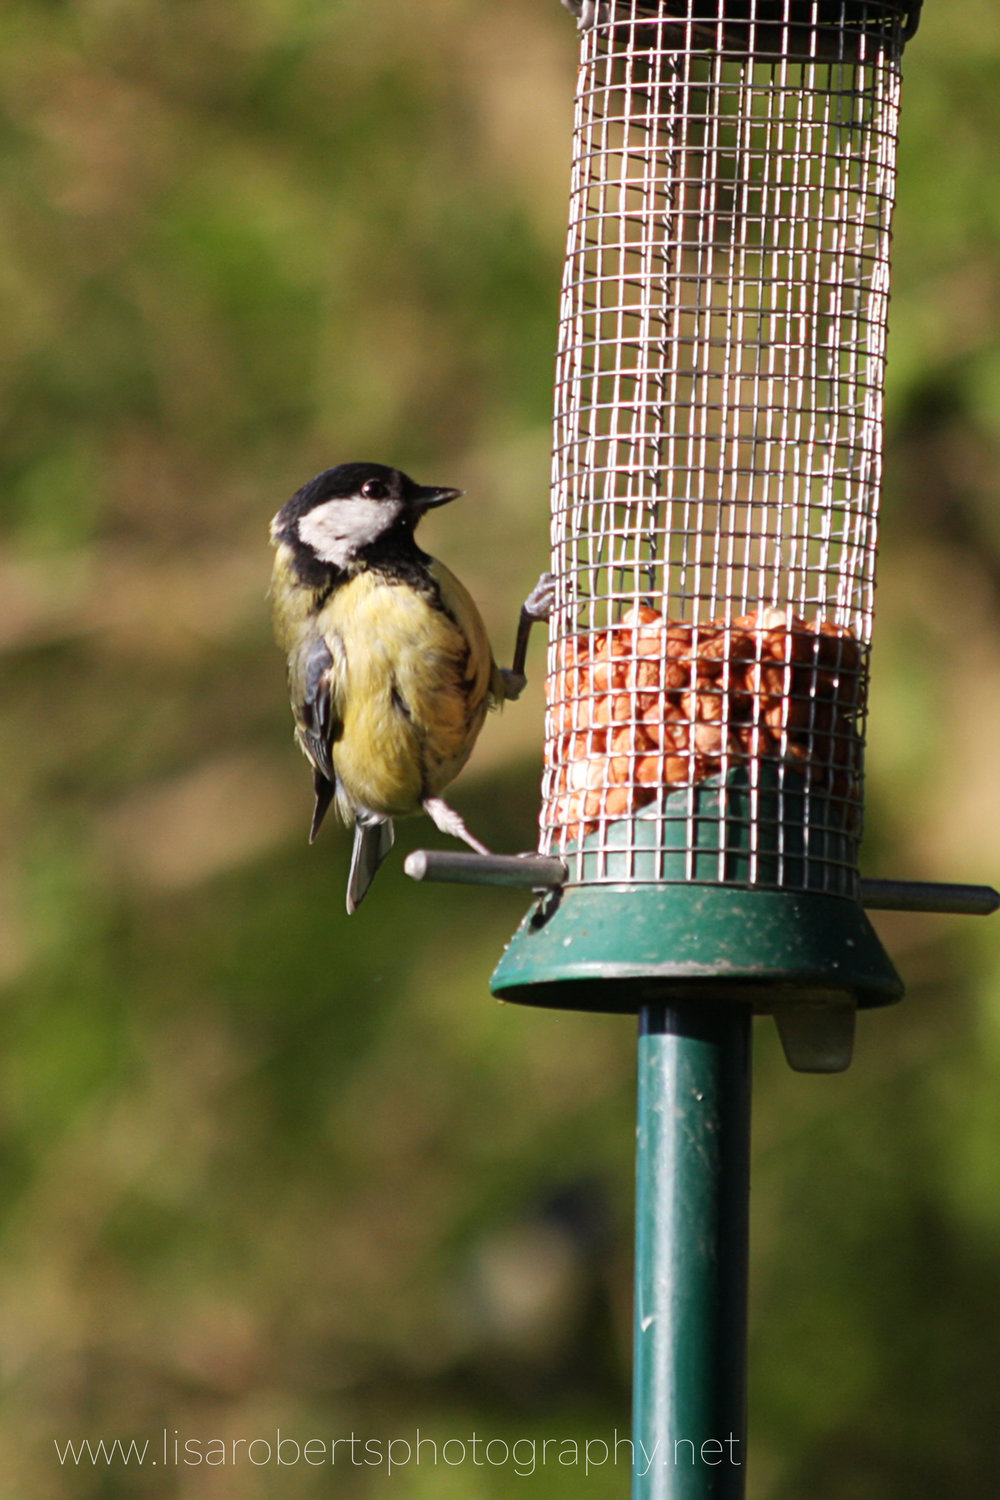 Female Great Tit on nuts